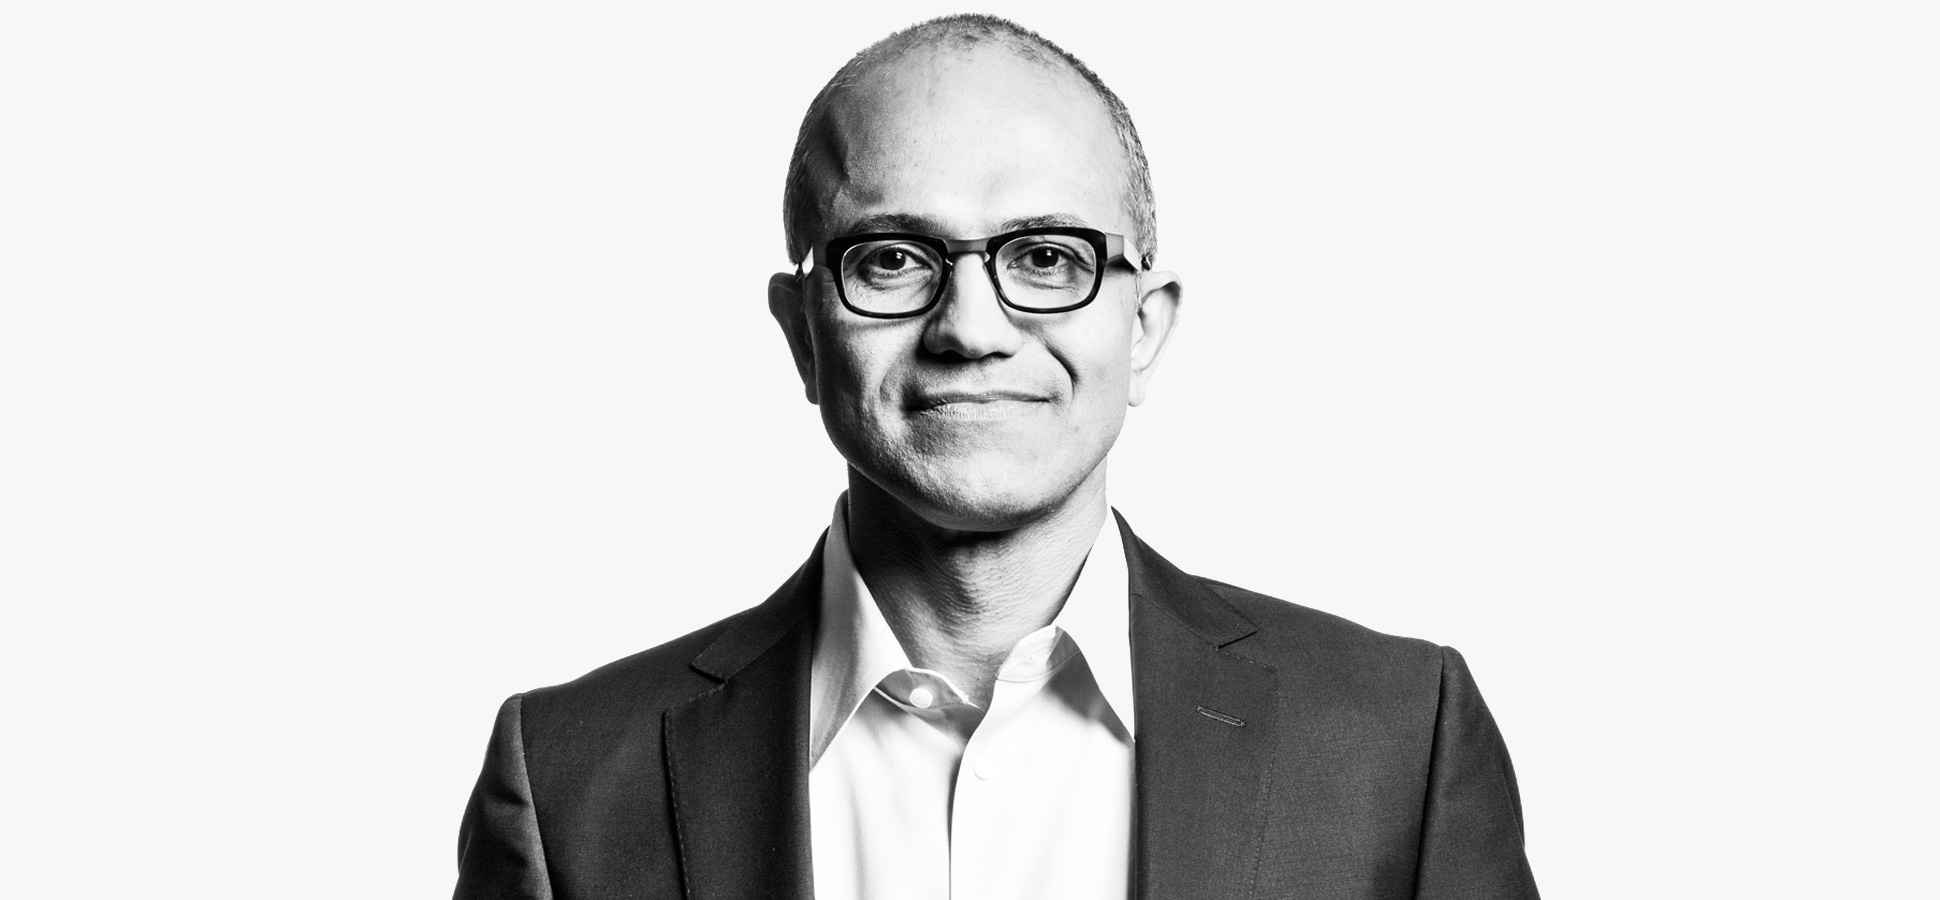 In a 6-Day Period, Microsoft's New CEO Satya Nadella Completely Changed the Company